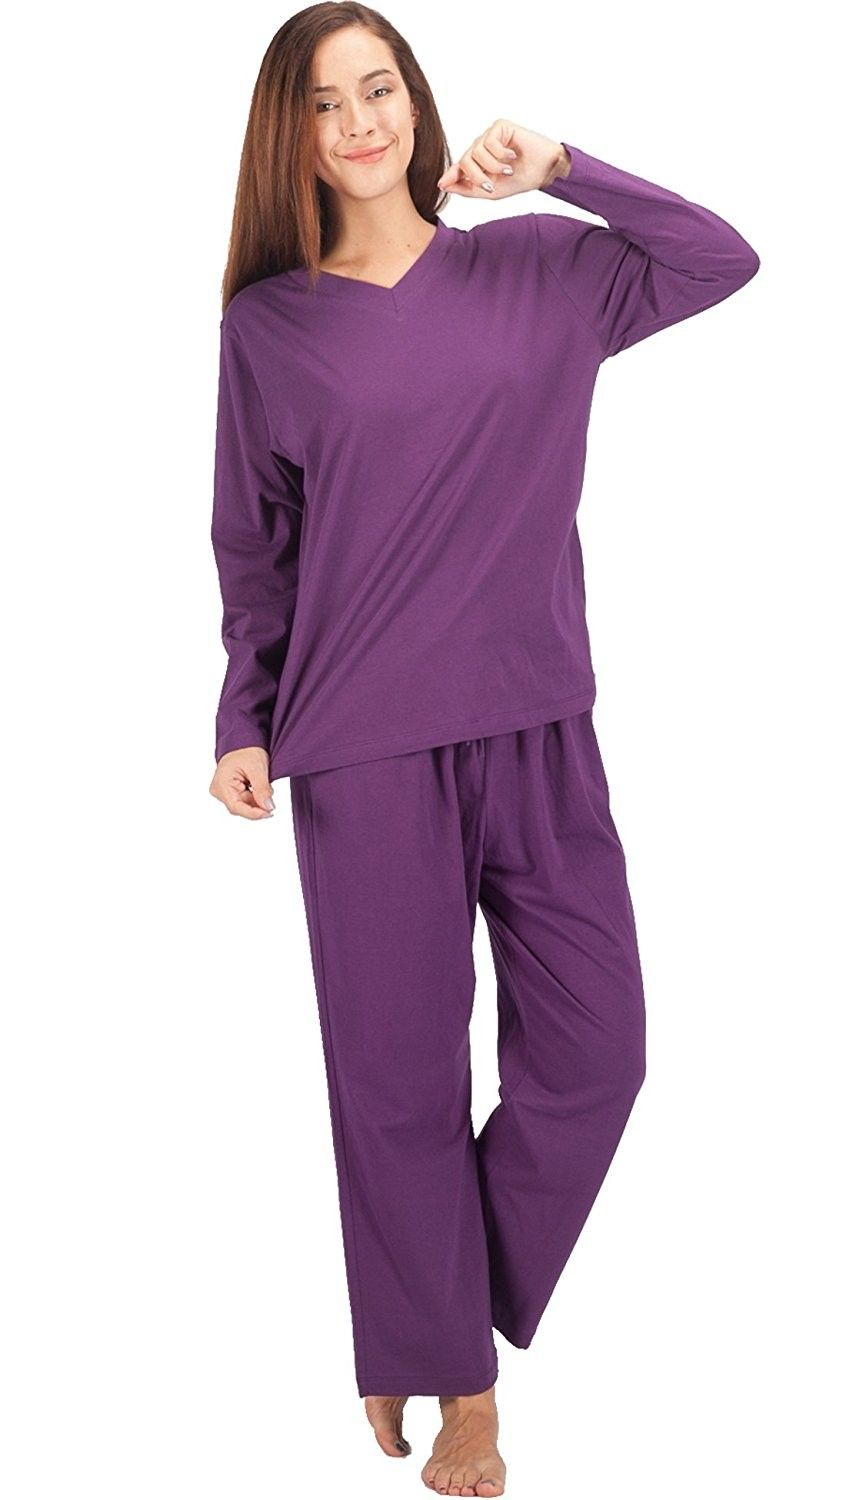 48eabaad9cb6 Womens Pajama Sets Cotton Sleepwear Long Sleeve PJ Set - Purple -  CN180N88T27